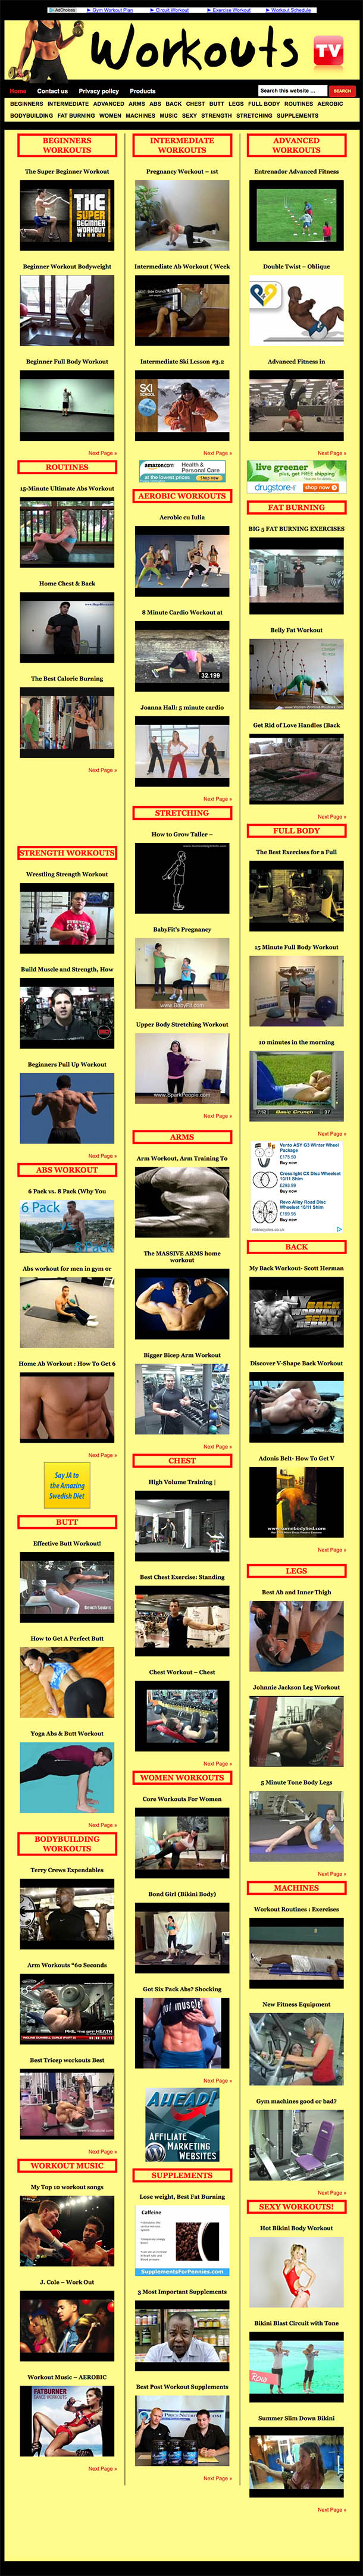 Workouts_TV_–_Working_out_video_lessons,_advice_and_products copy